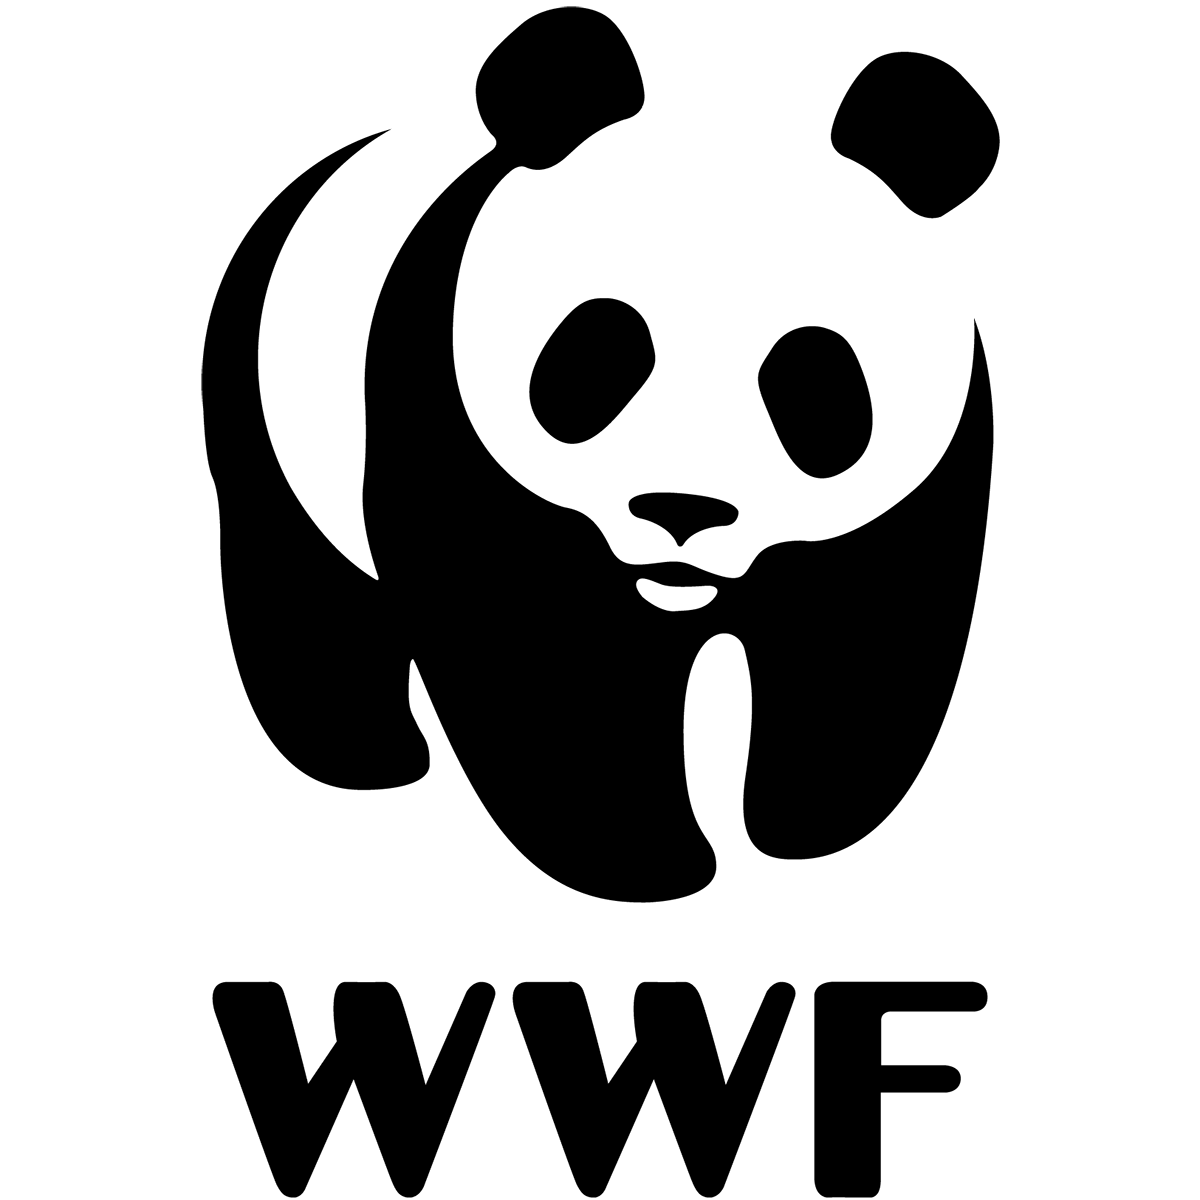 Biofriendly is proud to support the World Wildlife Fund